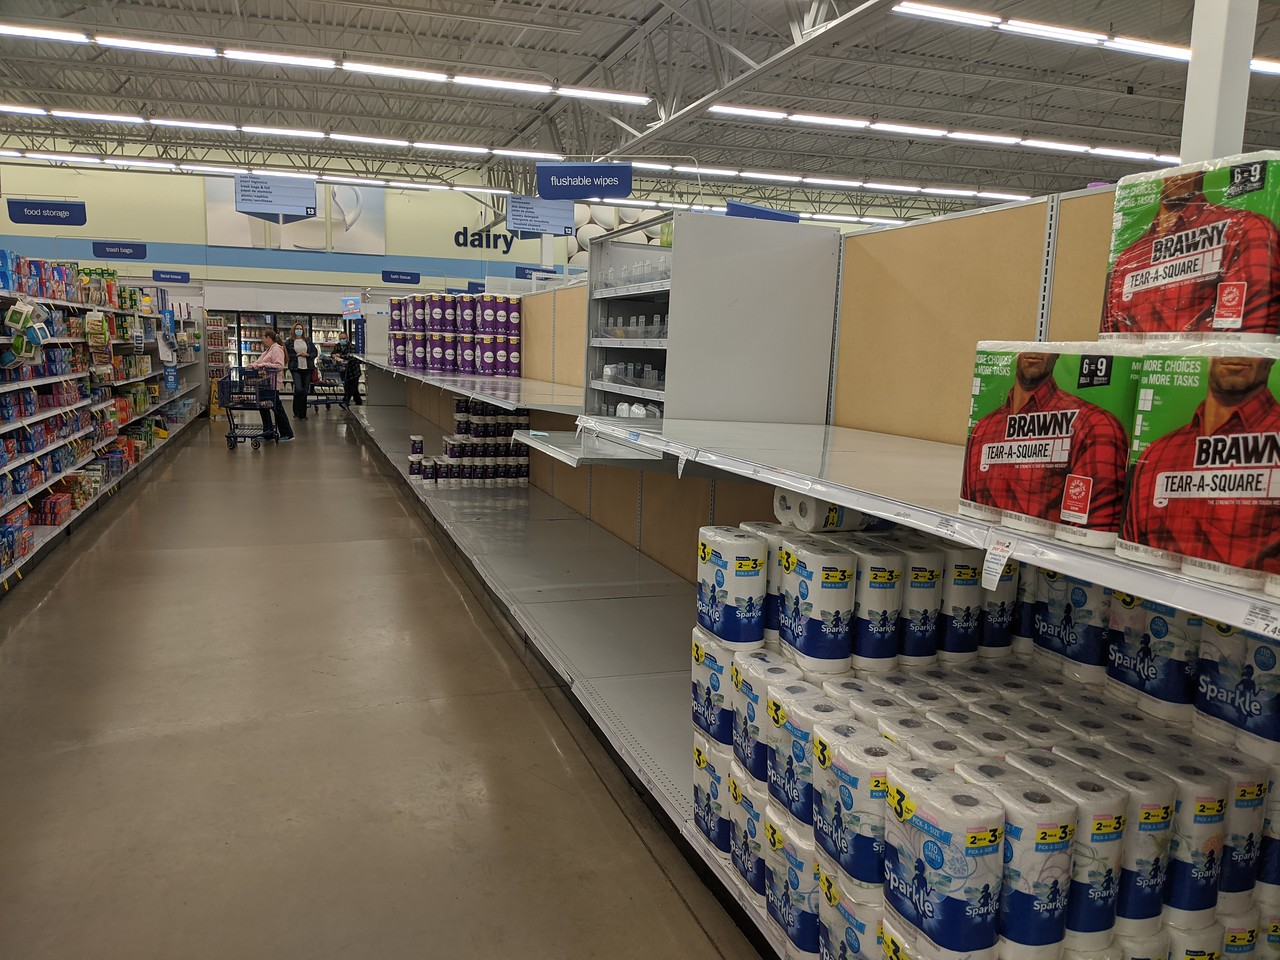 Paper towel and toilet paper aisle at Meijer, Apr 19, 2020